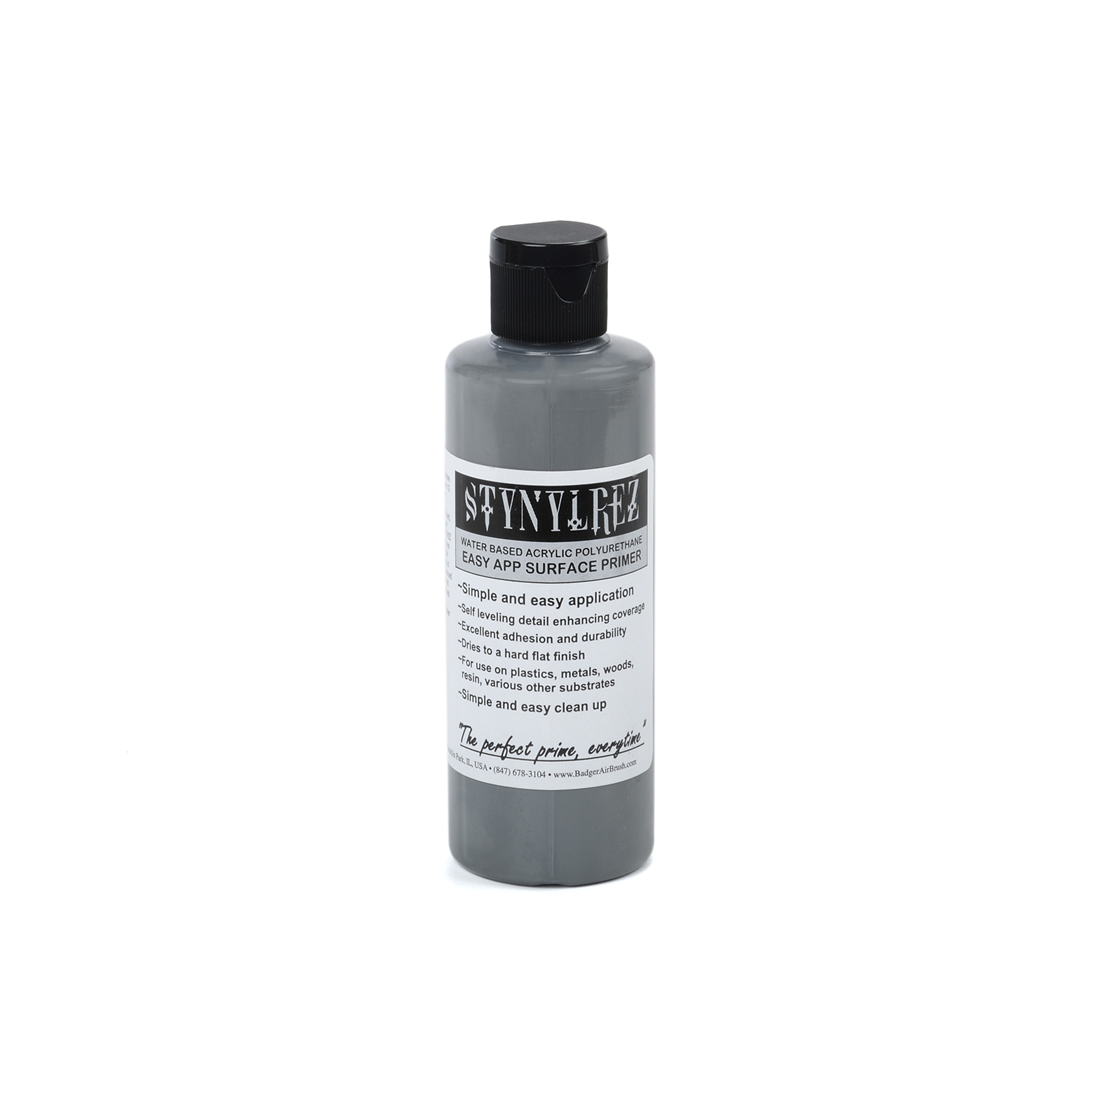 402 Badger Stynylrez grey 120 ml.